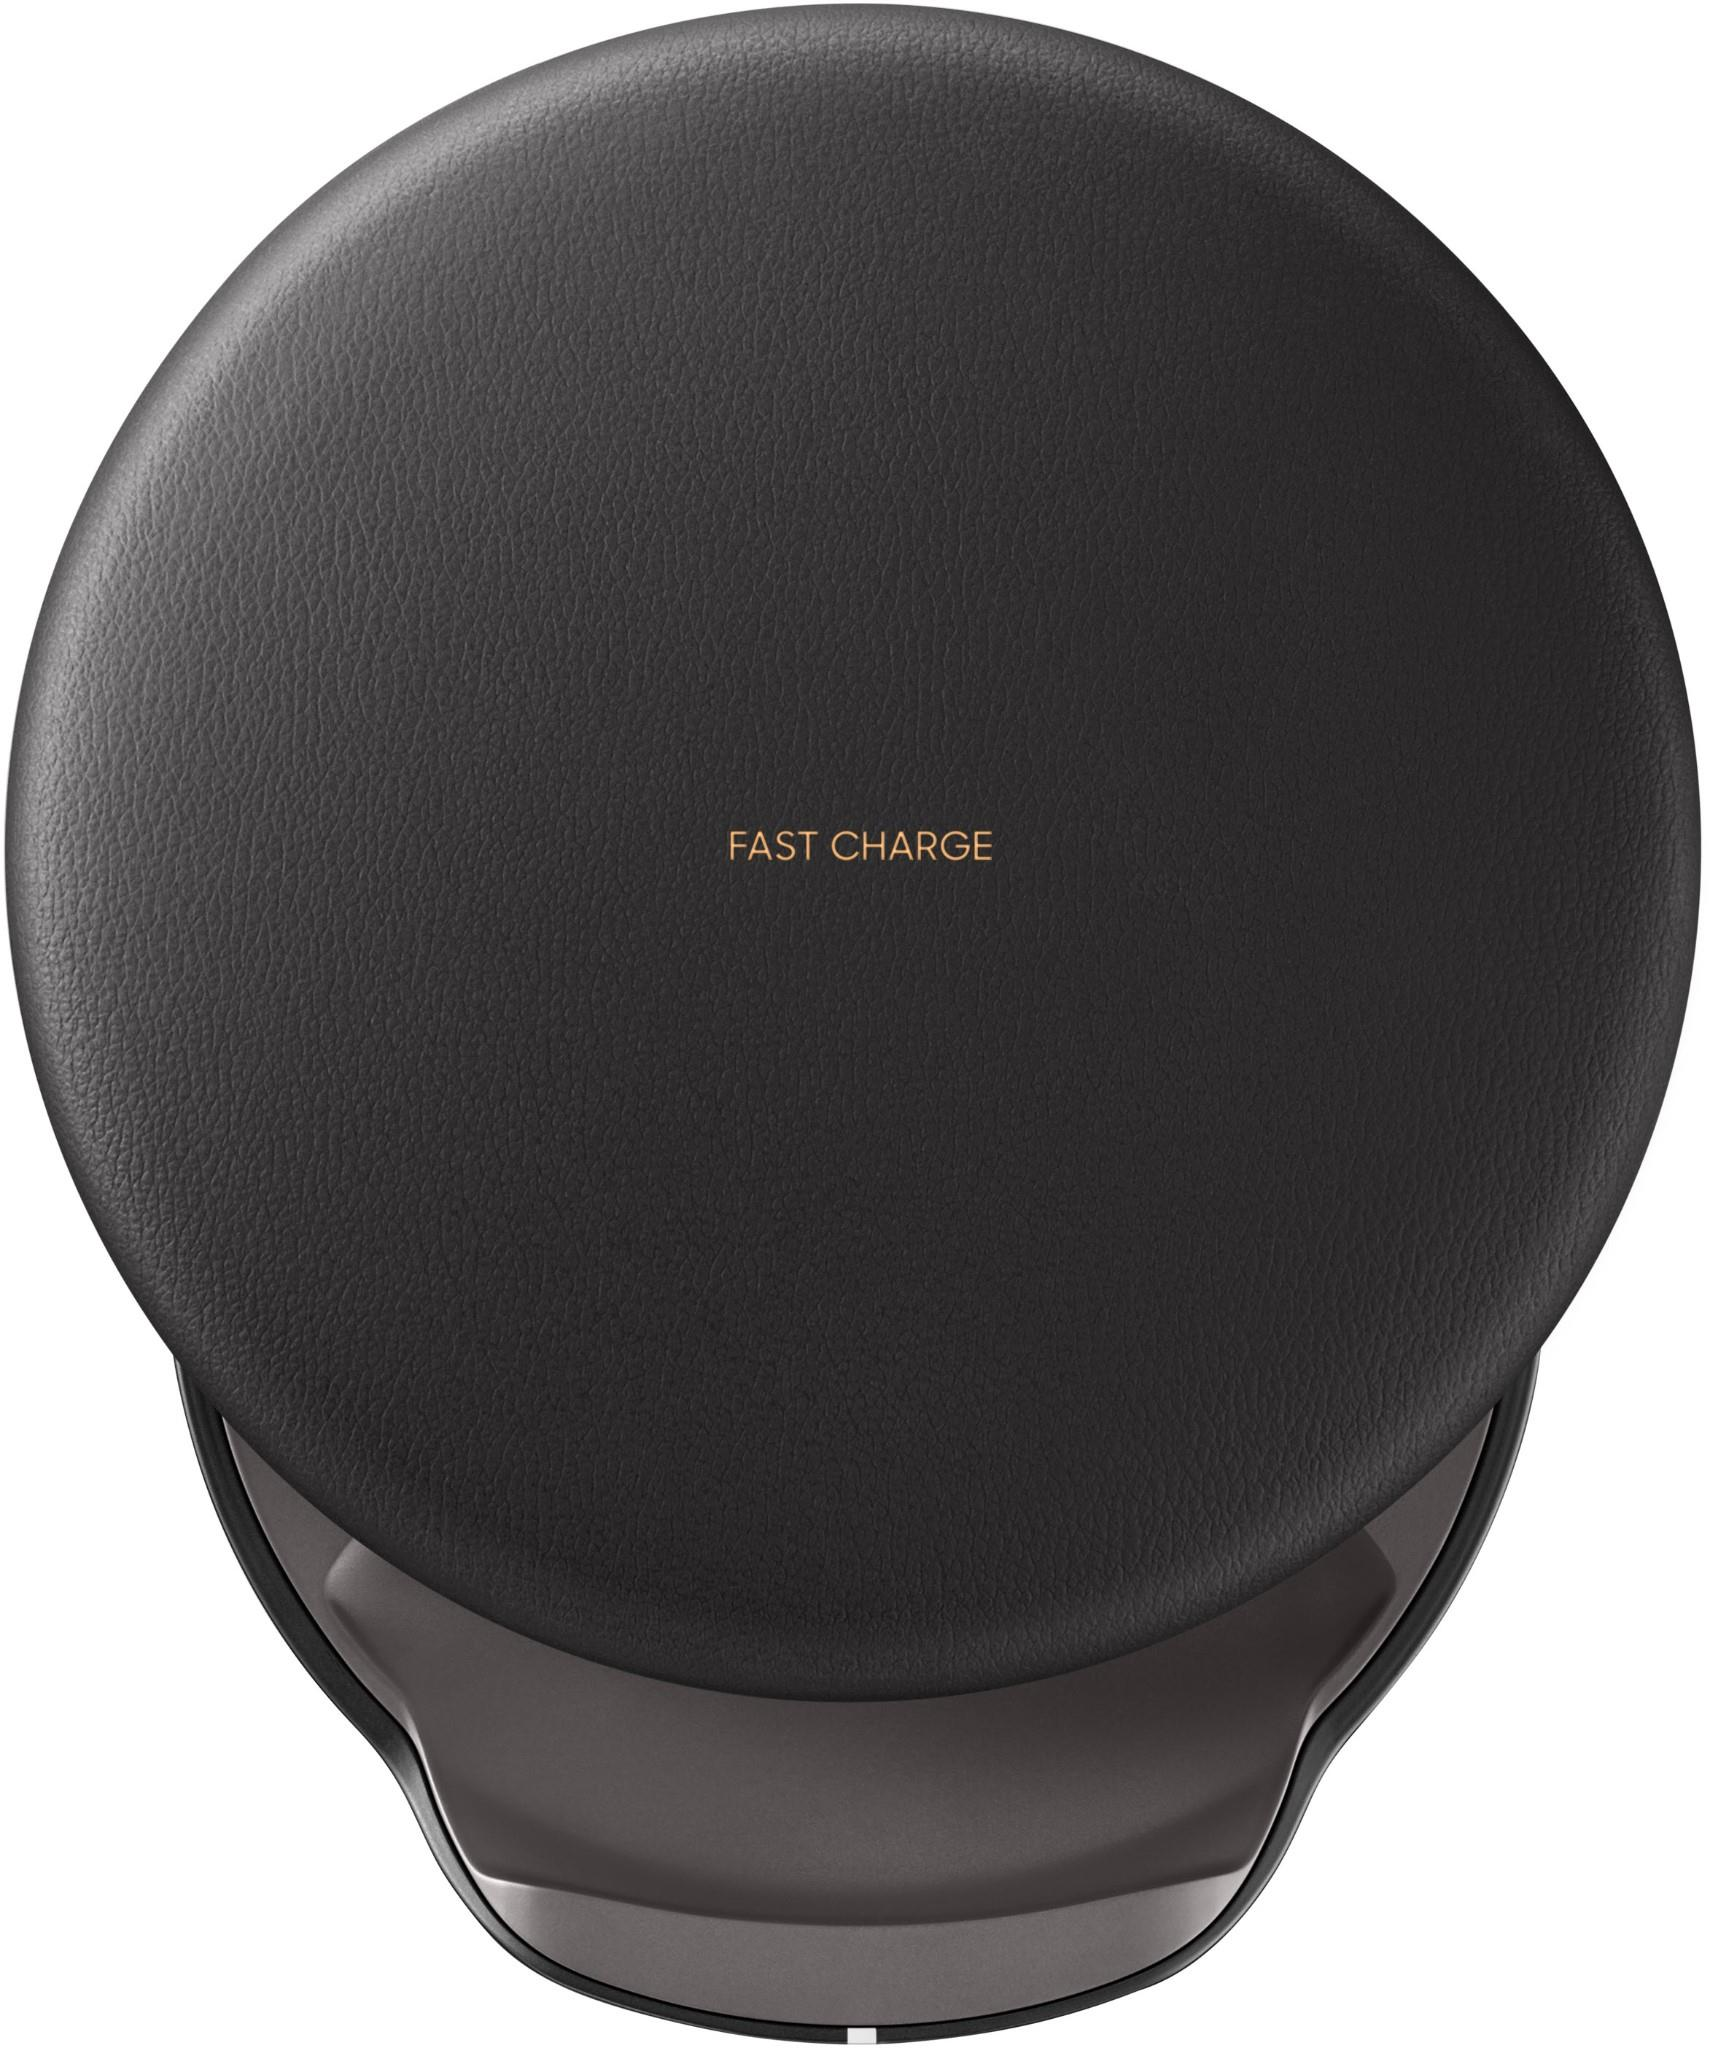 Samsung Fast Charge Wireless Charging Convertible (Black)